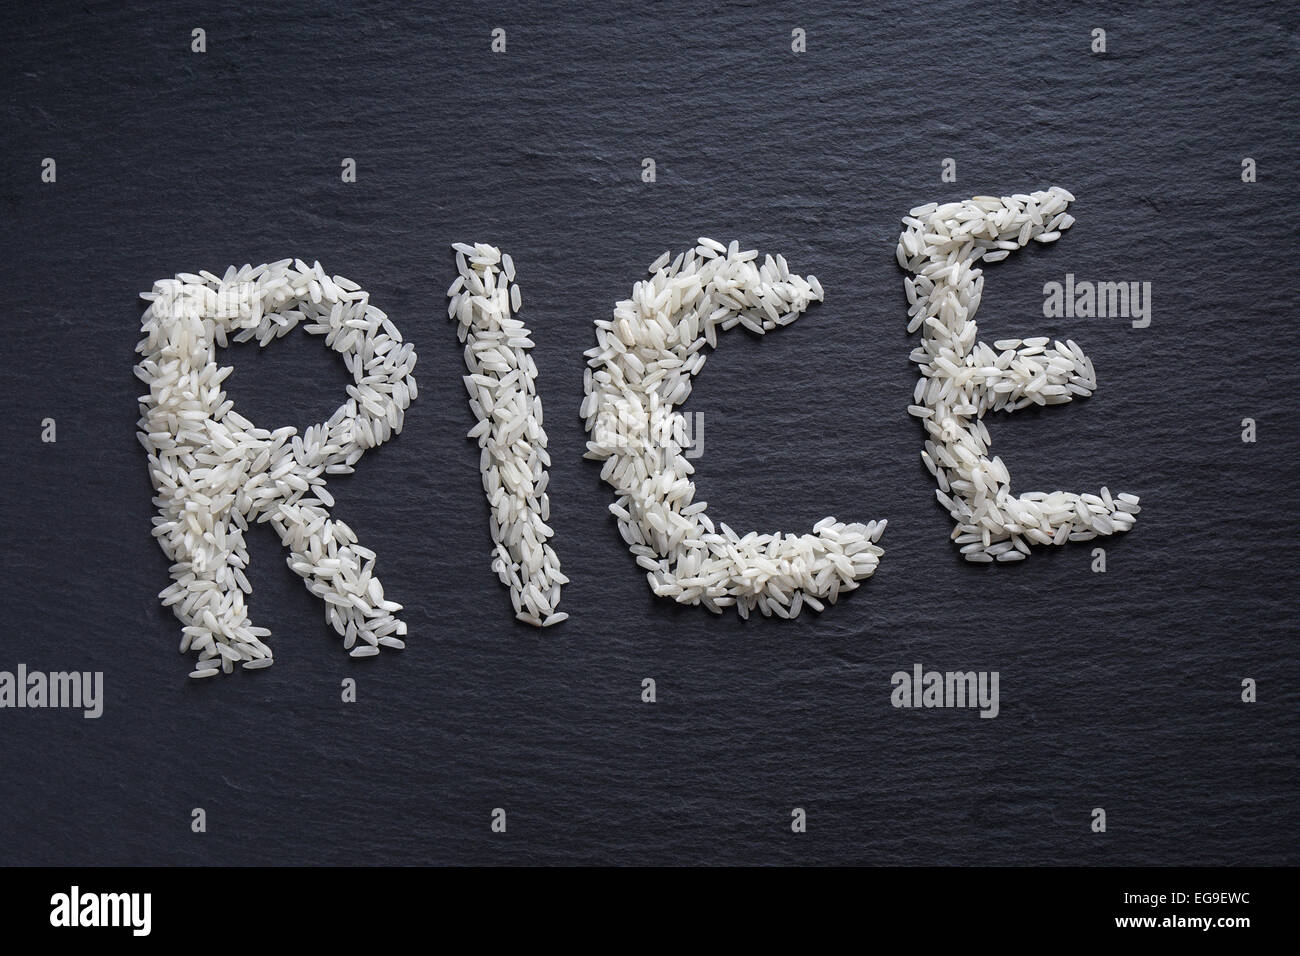 rice spelled out - Stock Image